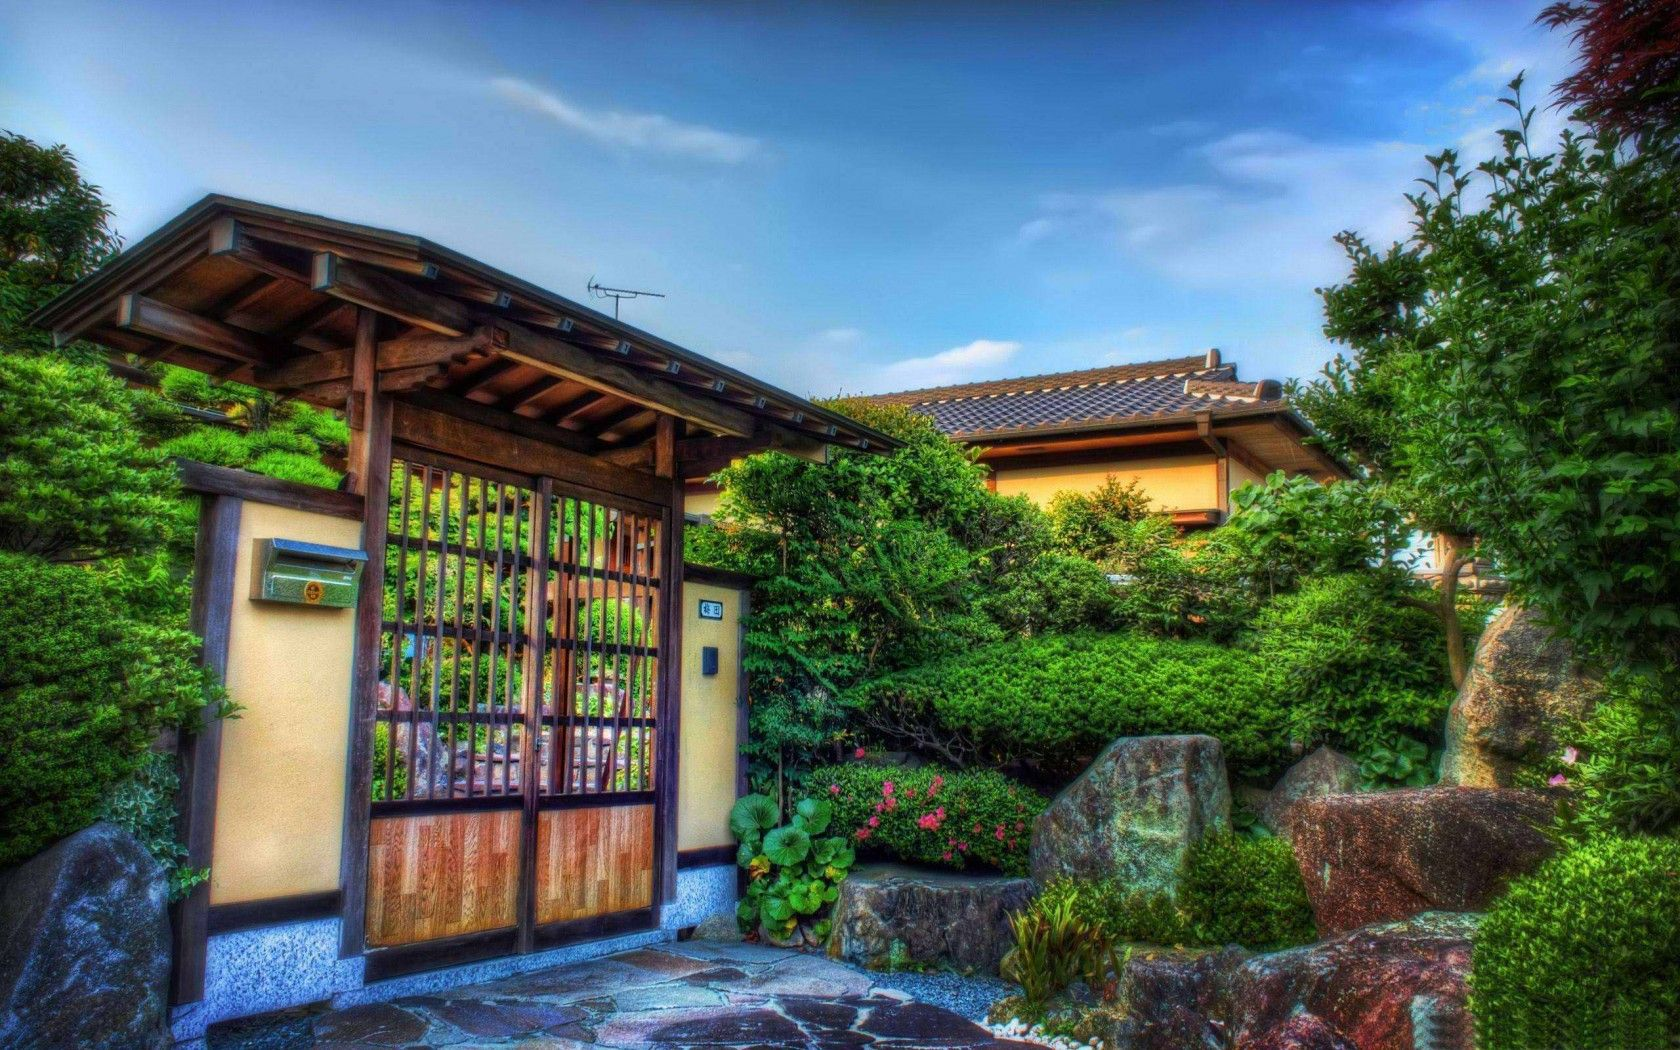 House Gate and Garden Japanese style and House